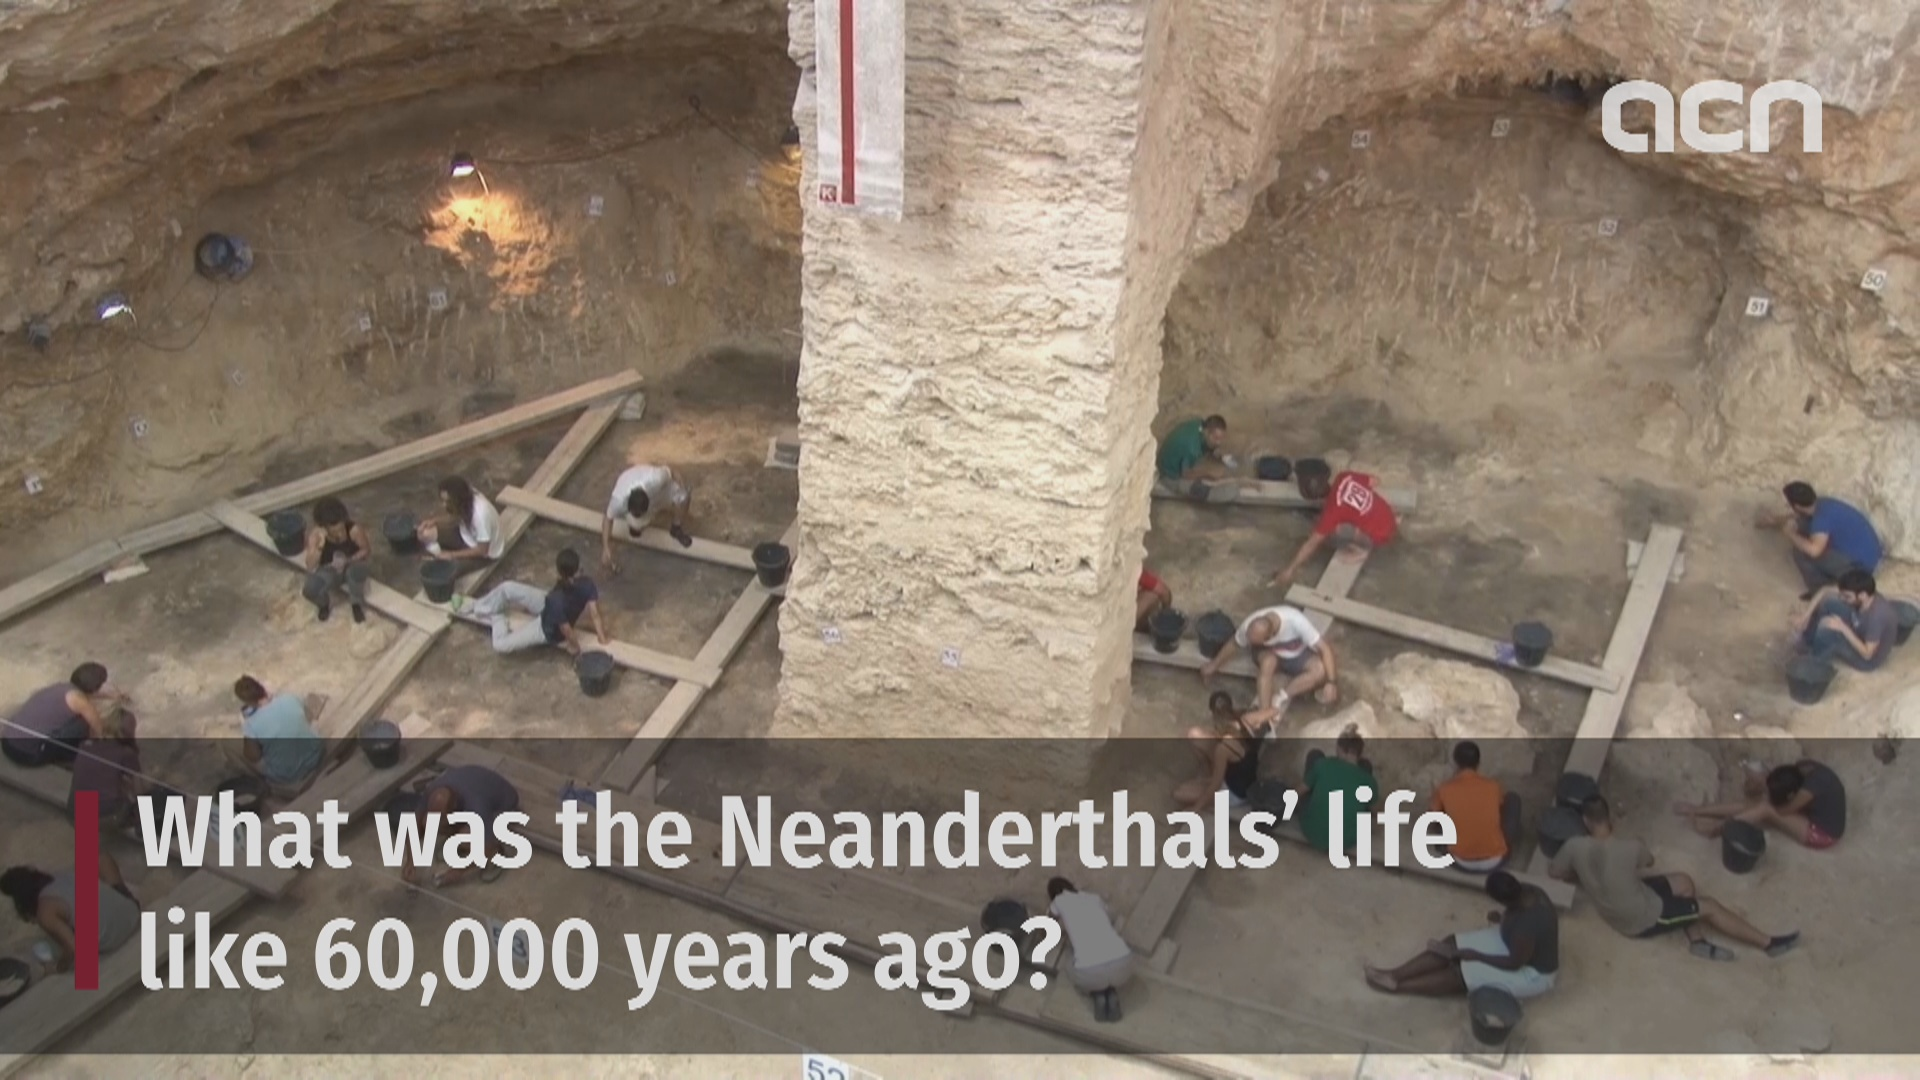 What was the Neanderthals' life like 60,000 years ago?